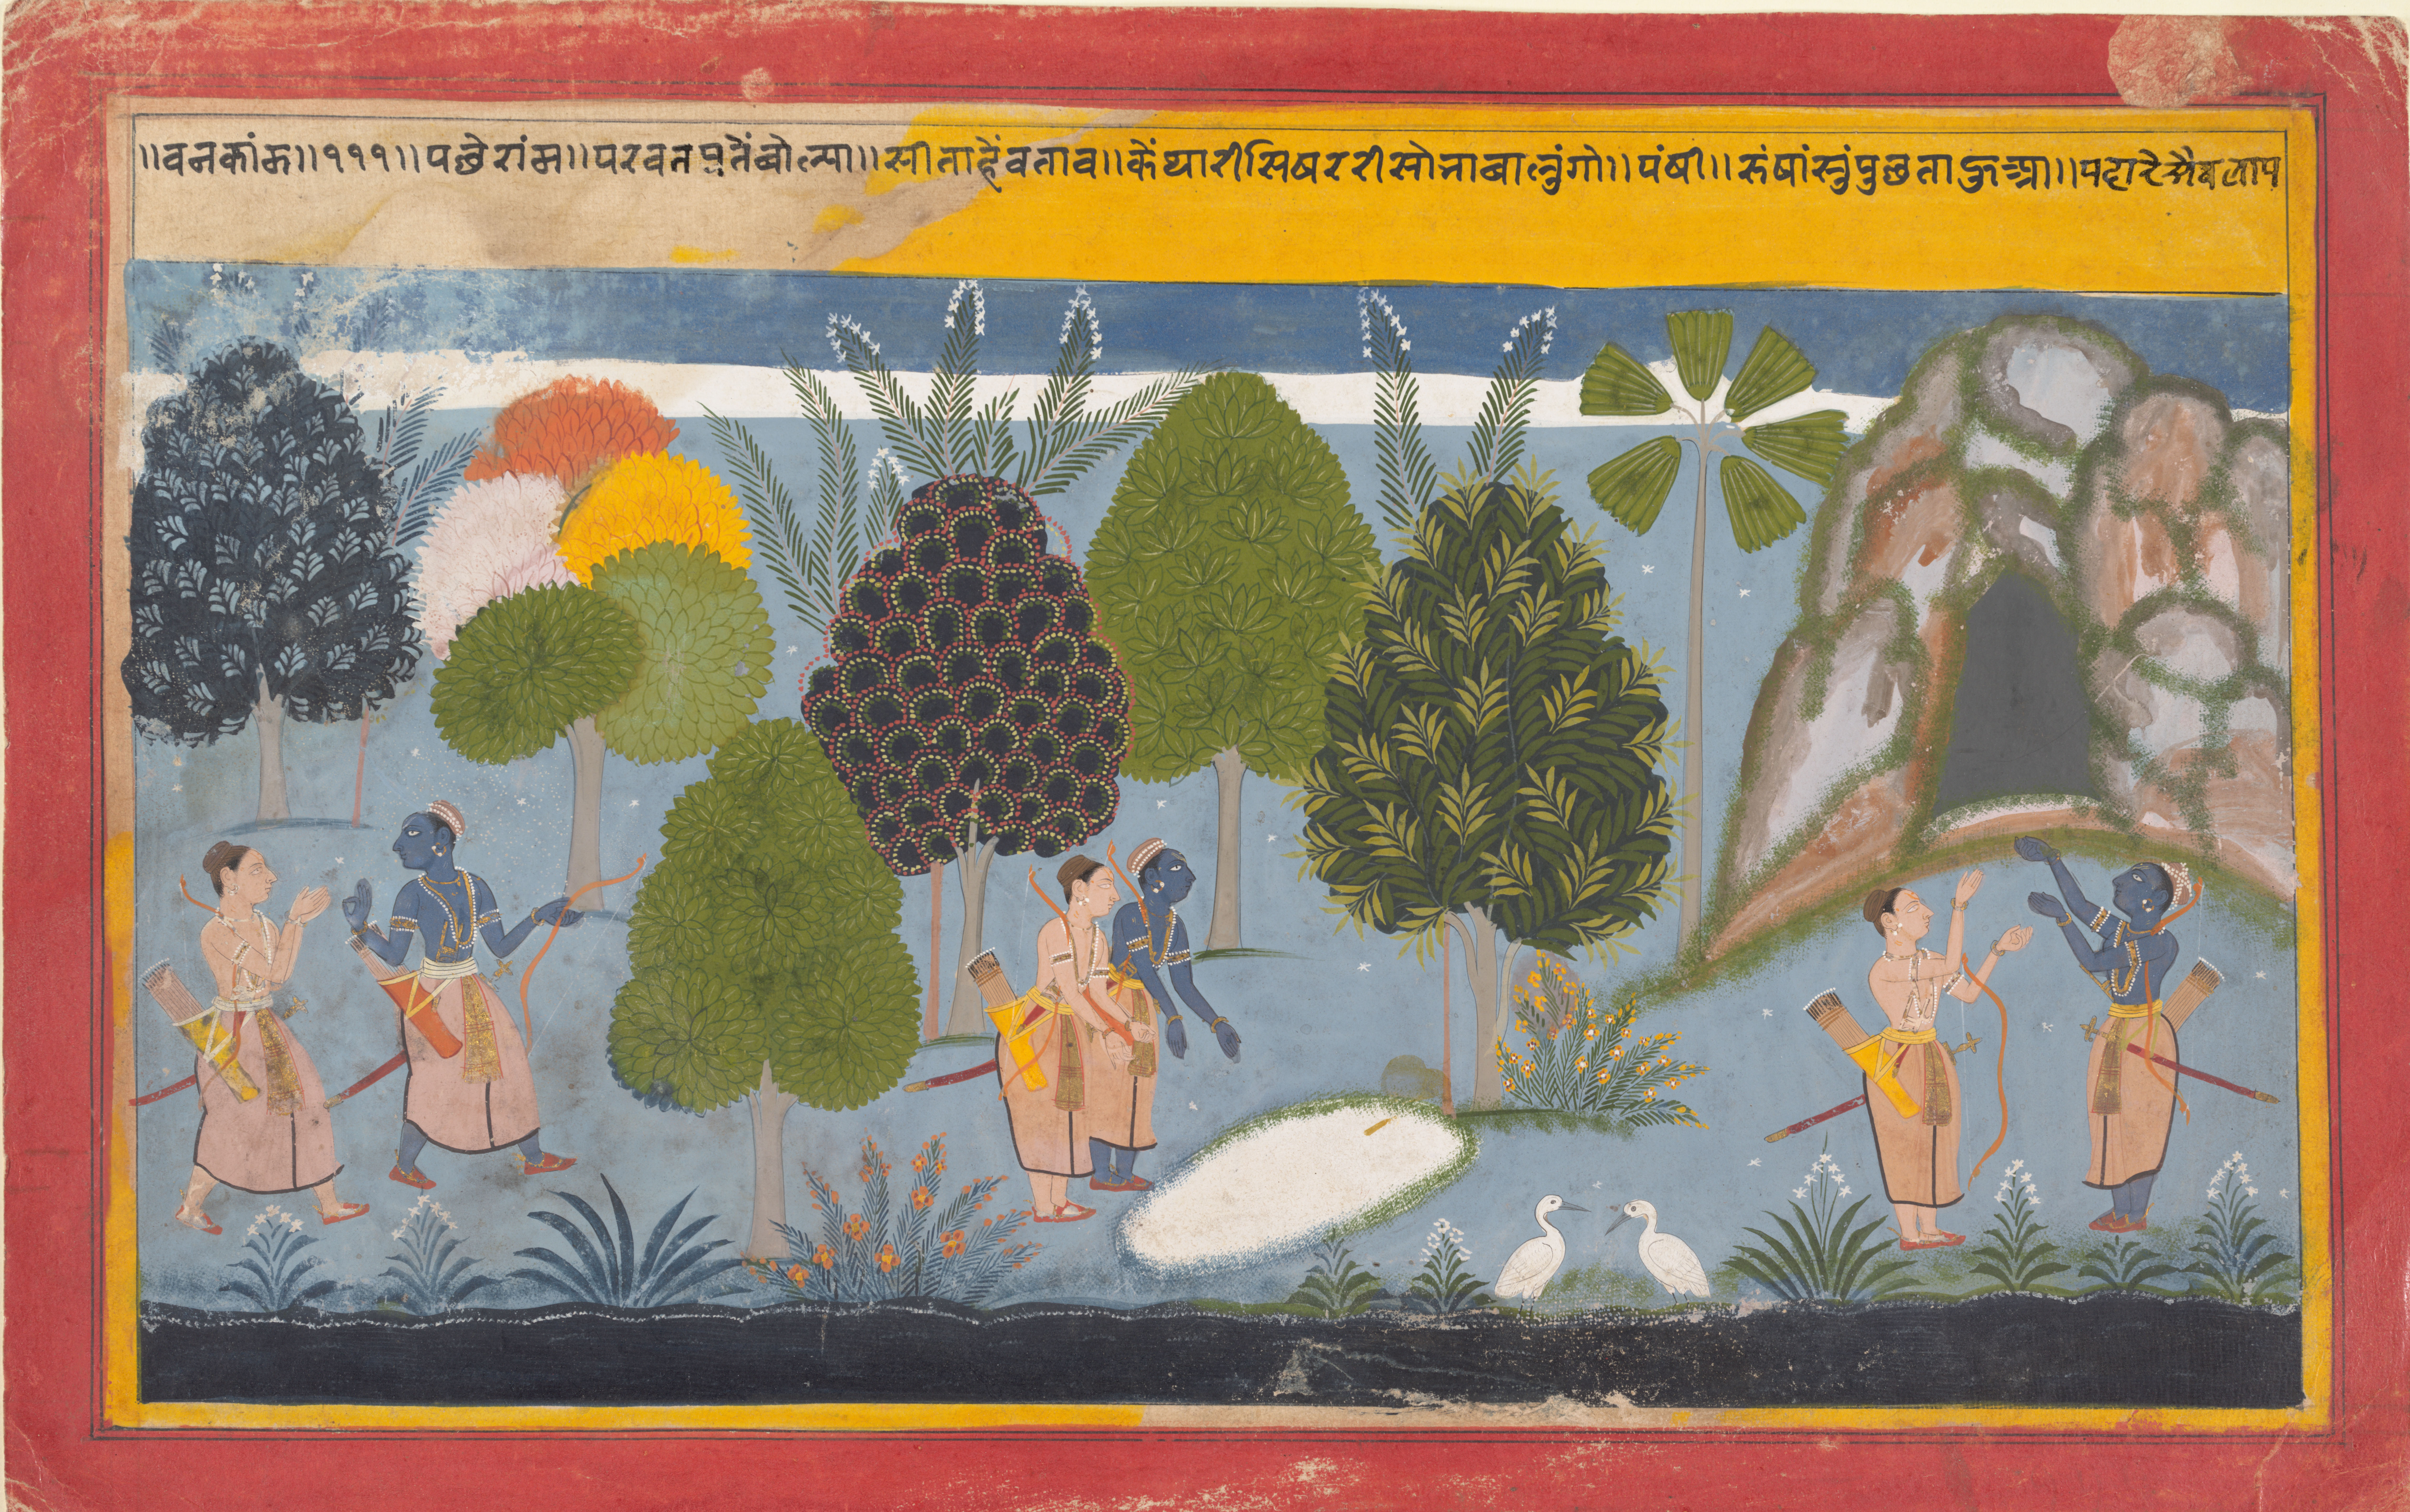 Rama and Lakshmana search in vain for Sita: An ink and opaque watercolour on paper from the Mewar region in Rajasthan, ca. 1680-90.